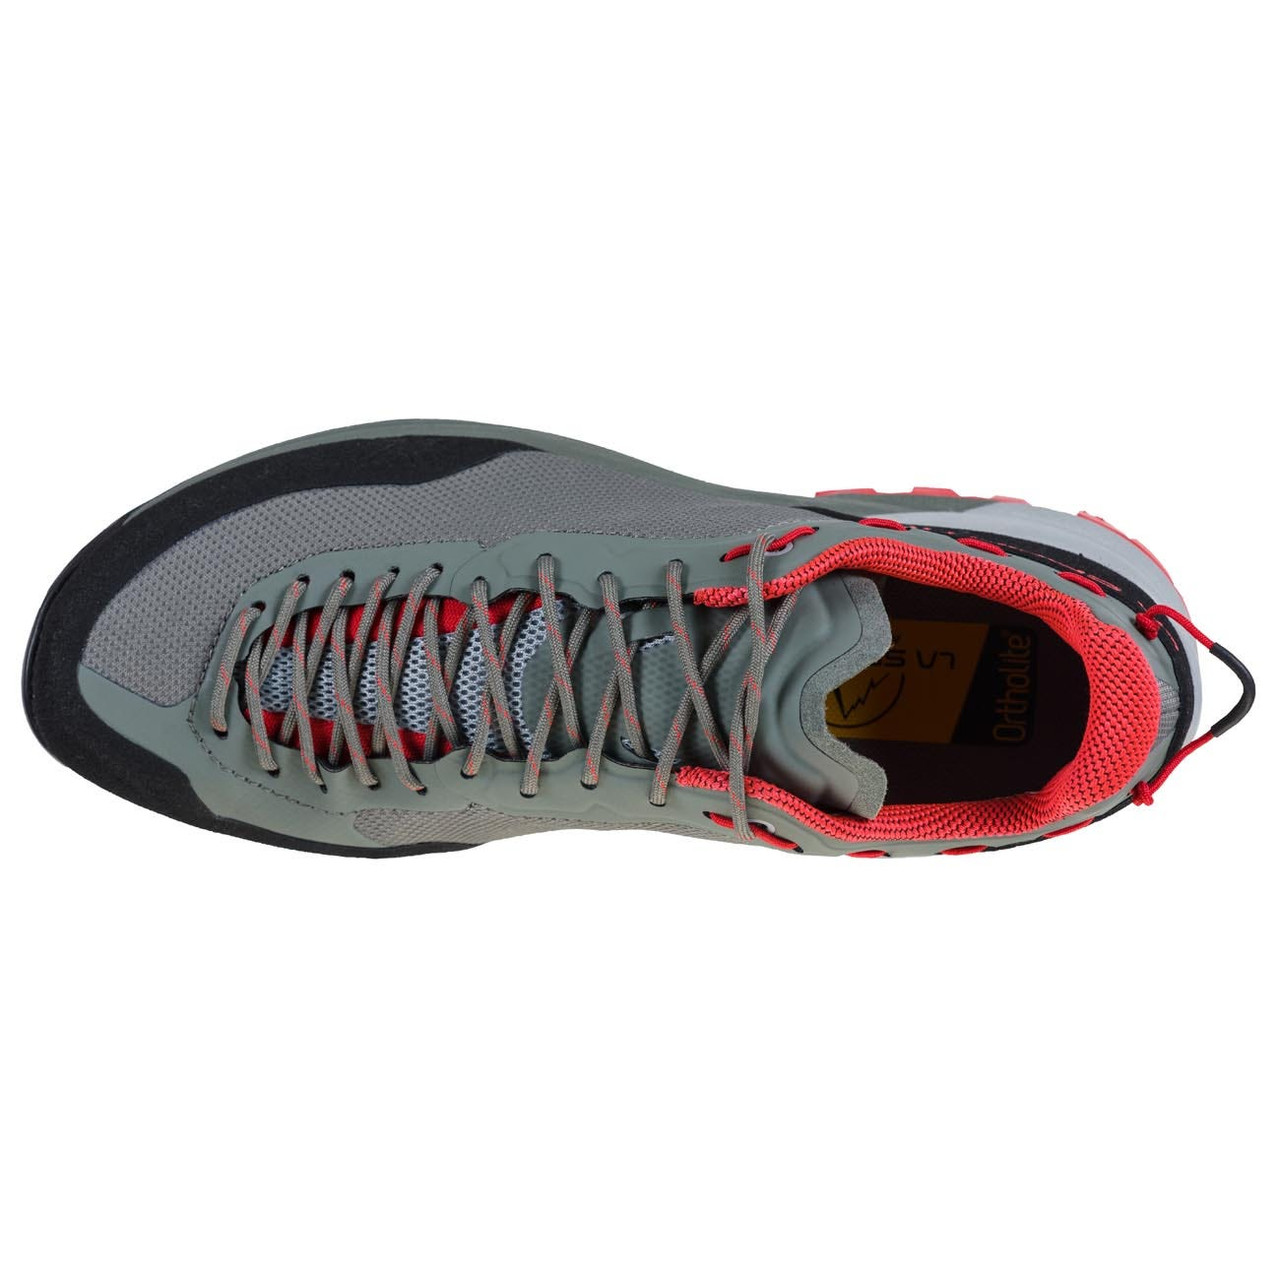 La Sportiva TX Guide - Women's Approach Shoe Top Online at Mountain Mail Order South Africa